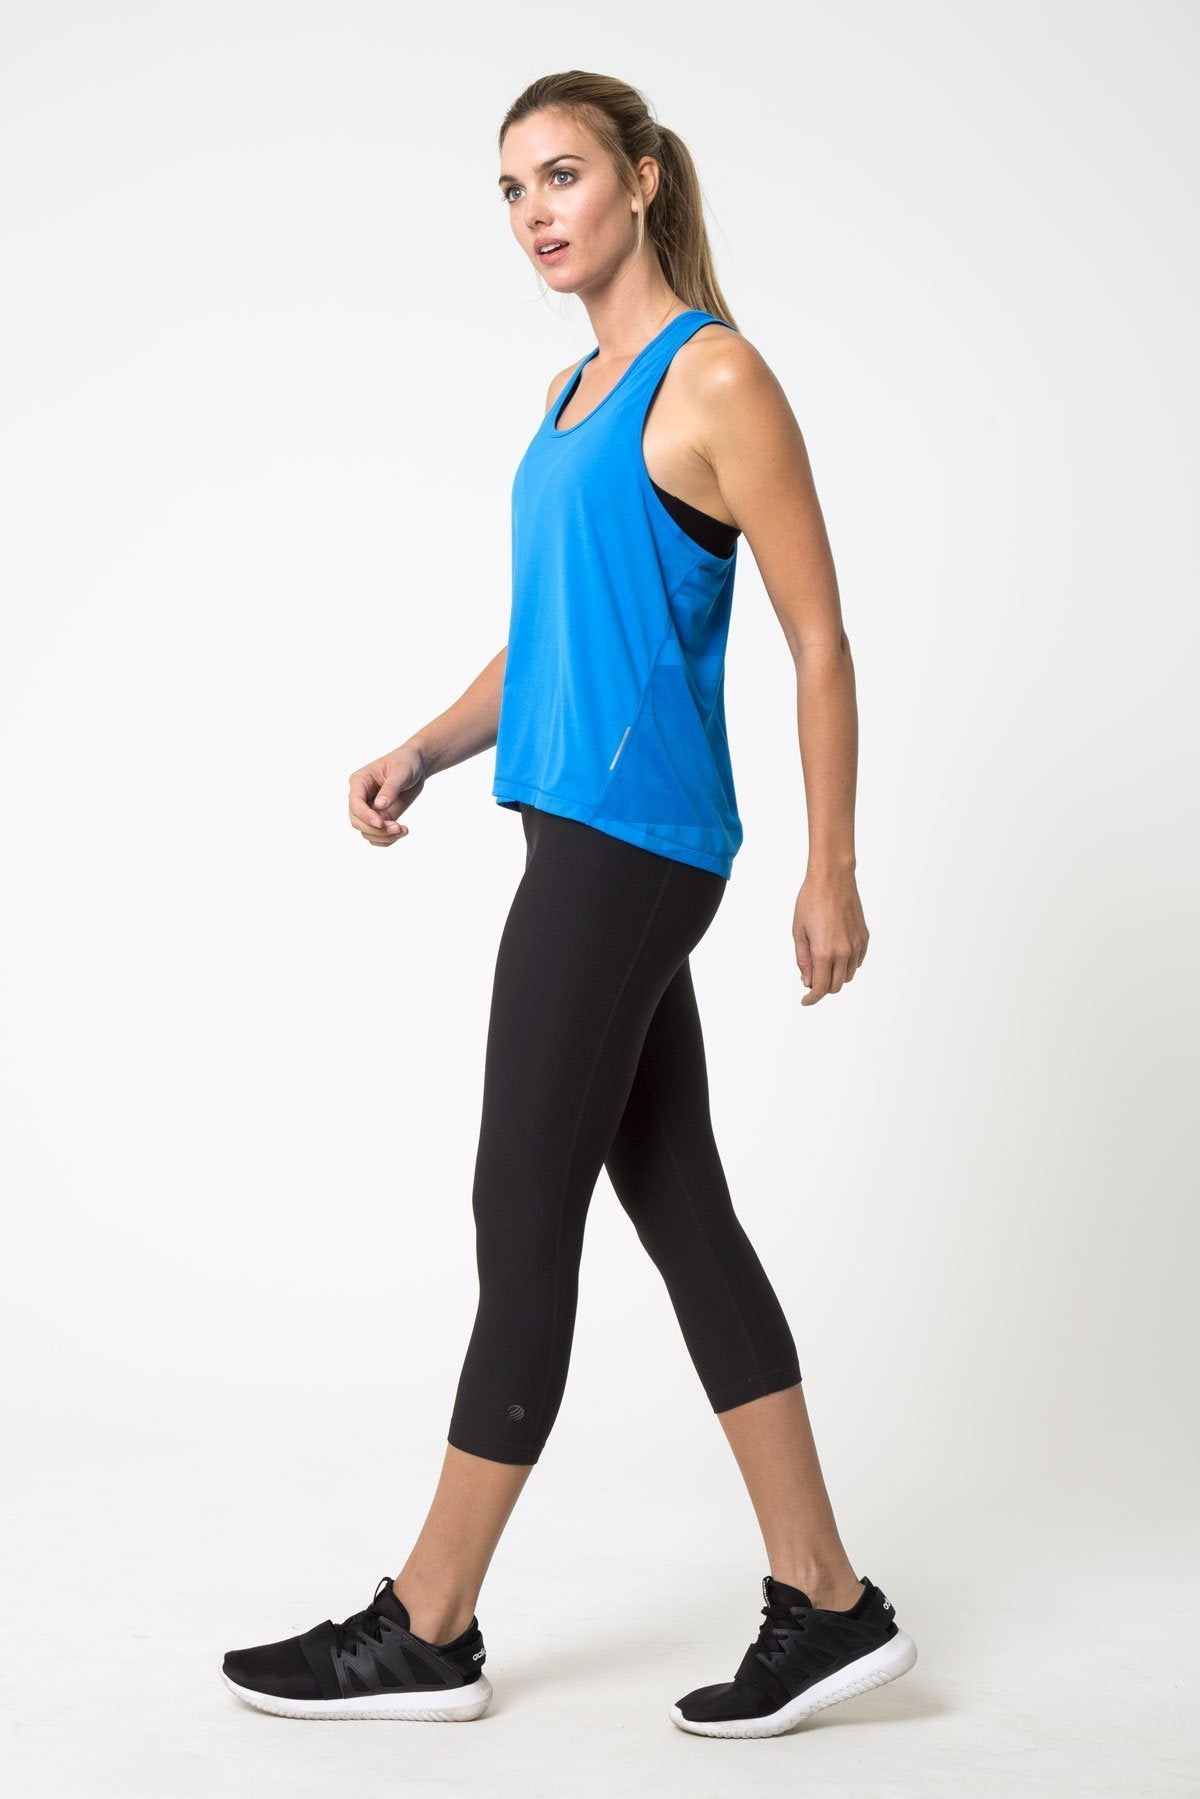 Hover 3.0 Tank Top - Azure